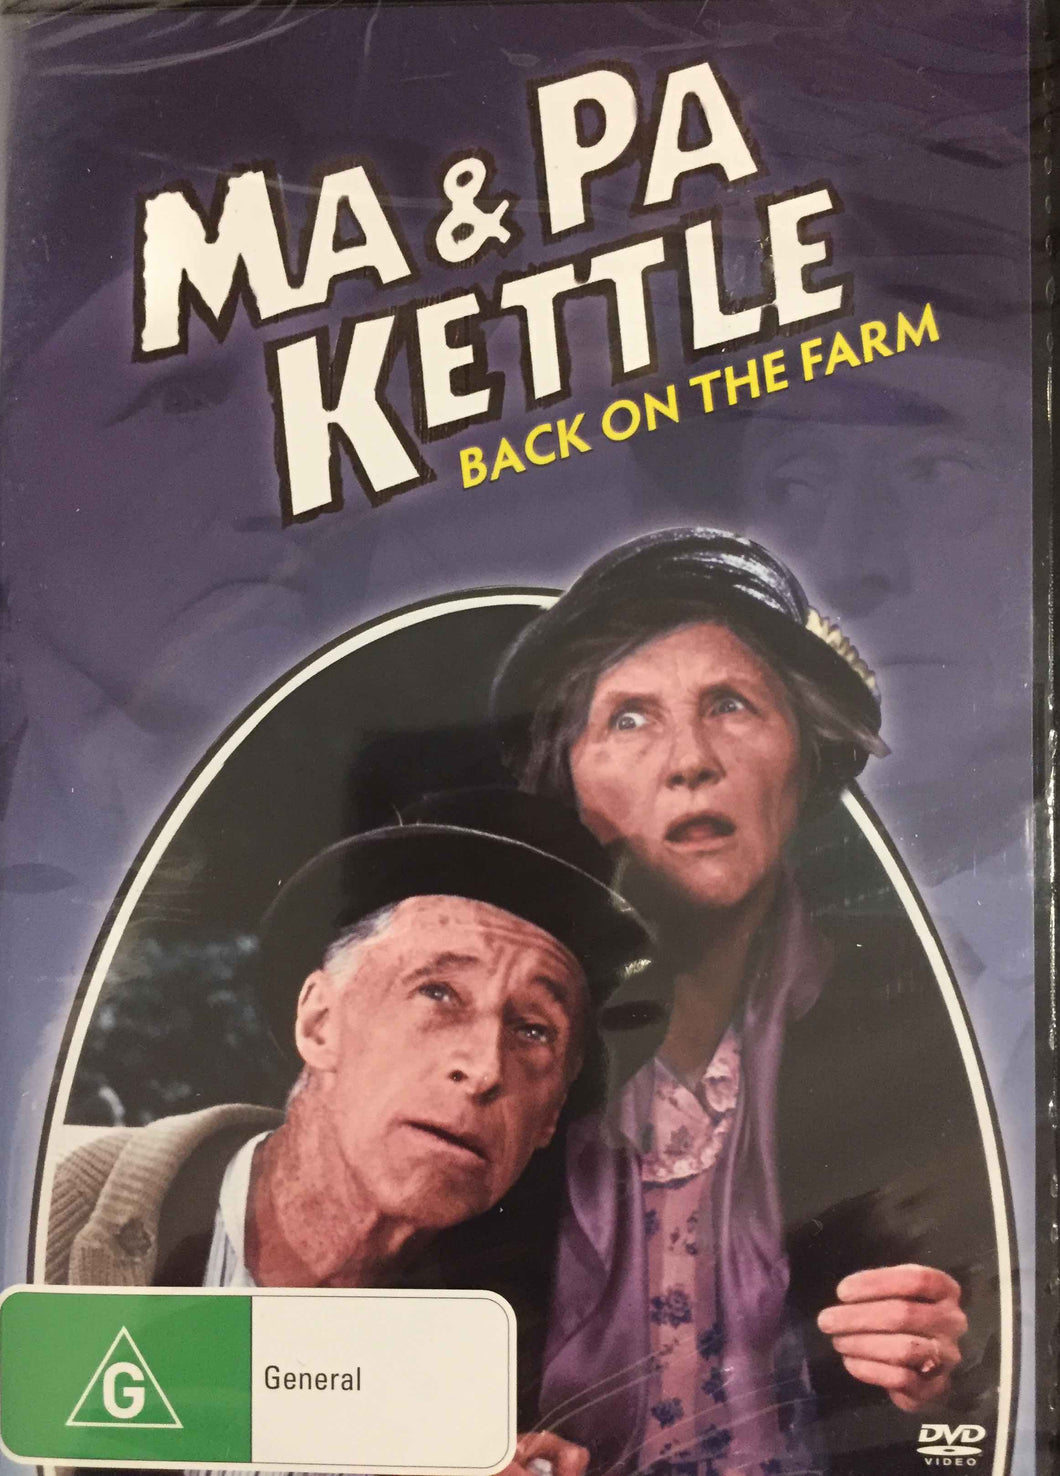 MA & PA KETTLE BACK ON THE FARM